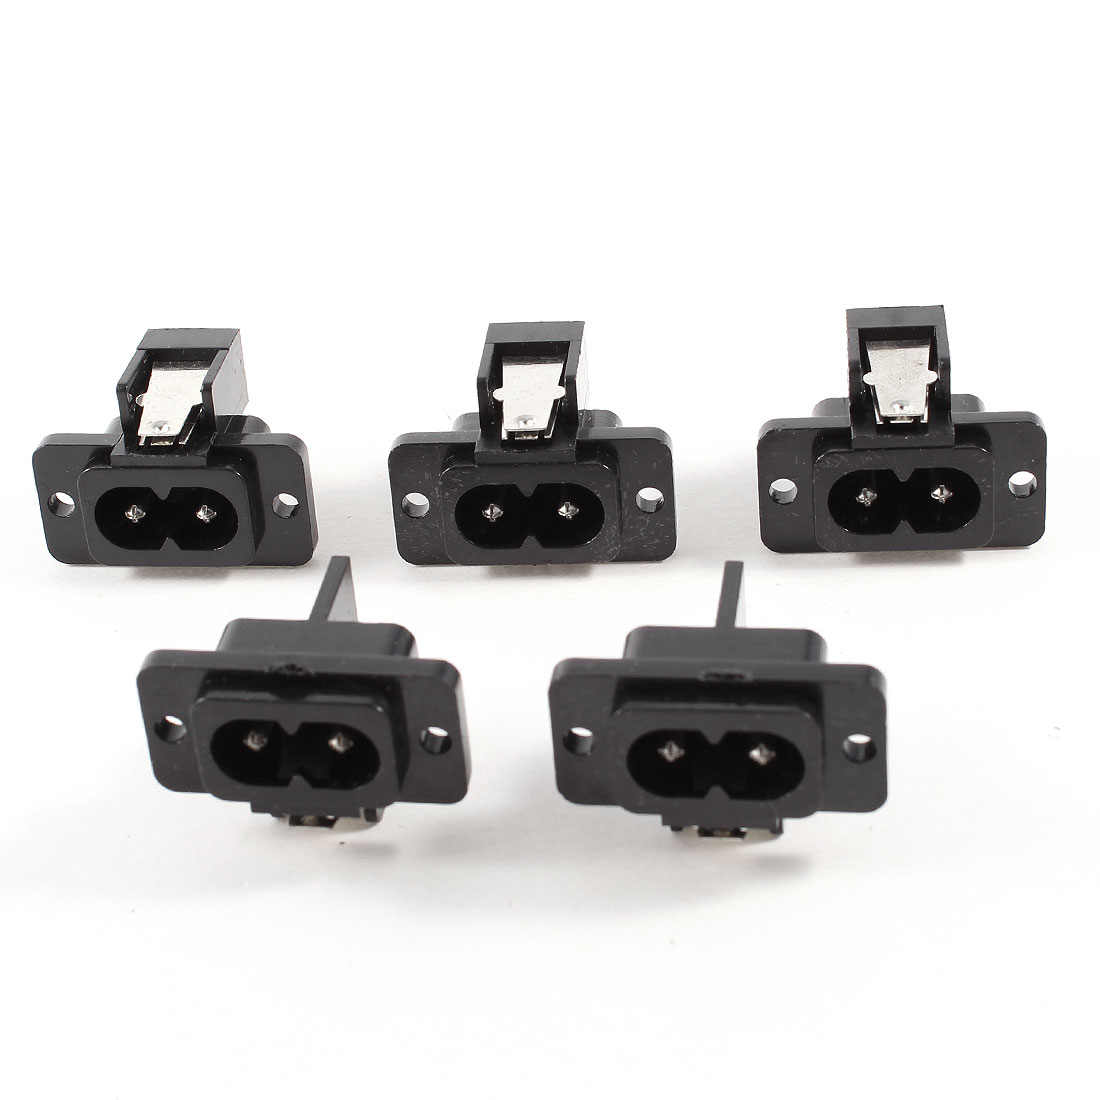 5 Pcs AC 250V 7A 2 Poles IEC320 C8 Power Inlet Socket Connector